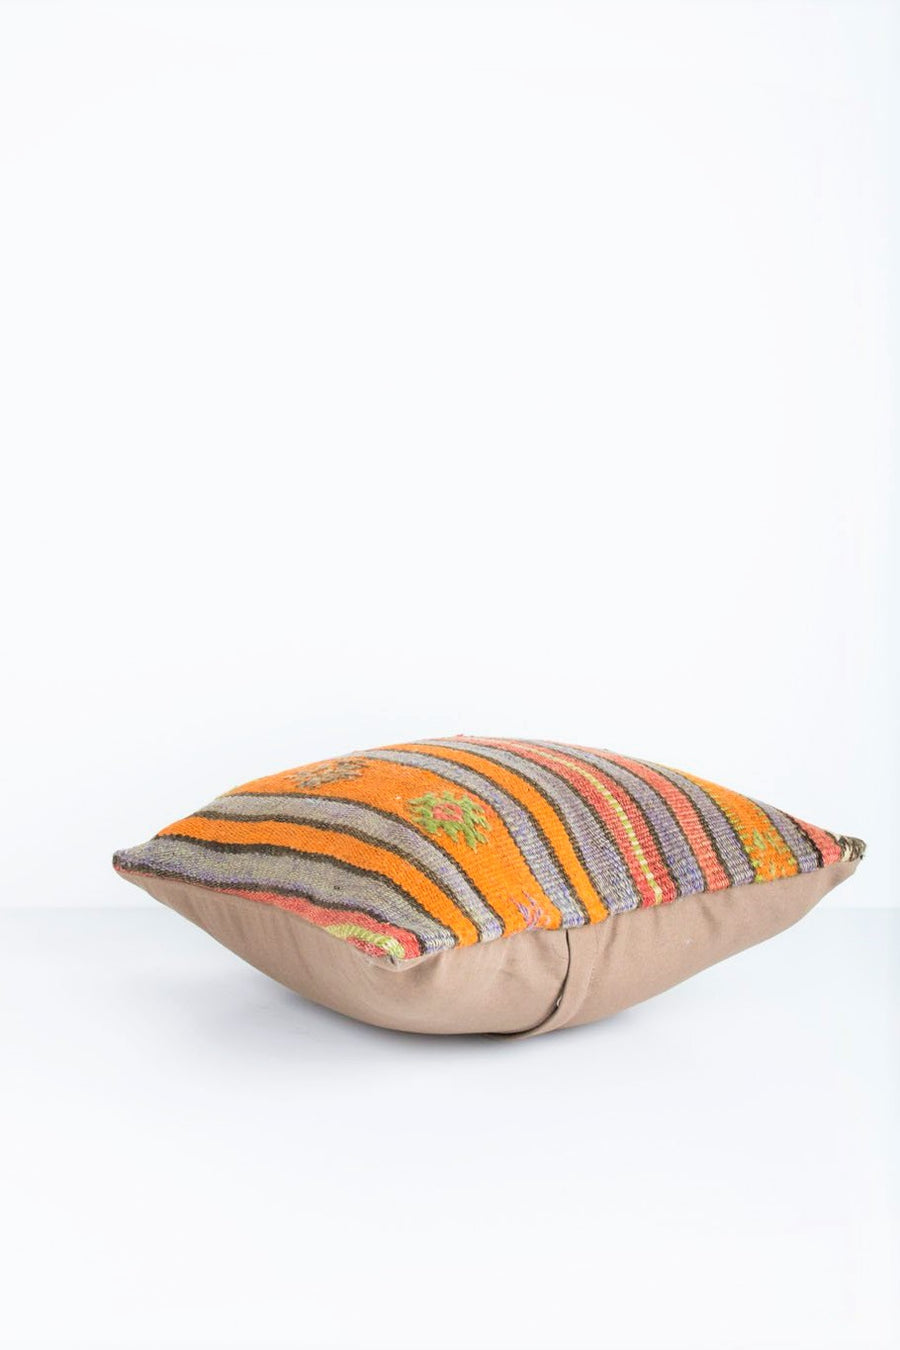 Aynur Turkish Kilim Pillow